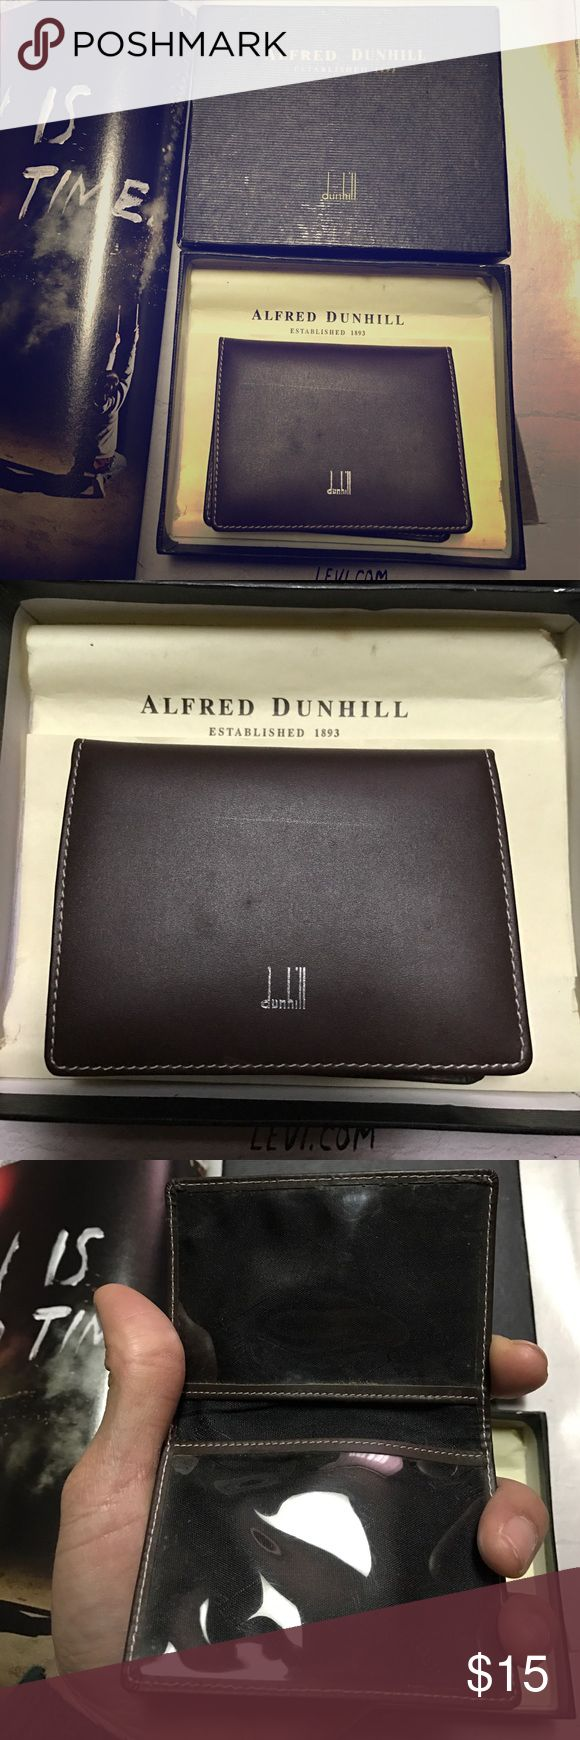 🔥NEW🔥 Alfred Dunhill Credit Card Wallet New never used. I've had it stored in my wardrobe years ago until now. Therefore, the box may show signs of aging. Please refer pictures for details Alfred Dunhill Accessories Key & Card Holders